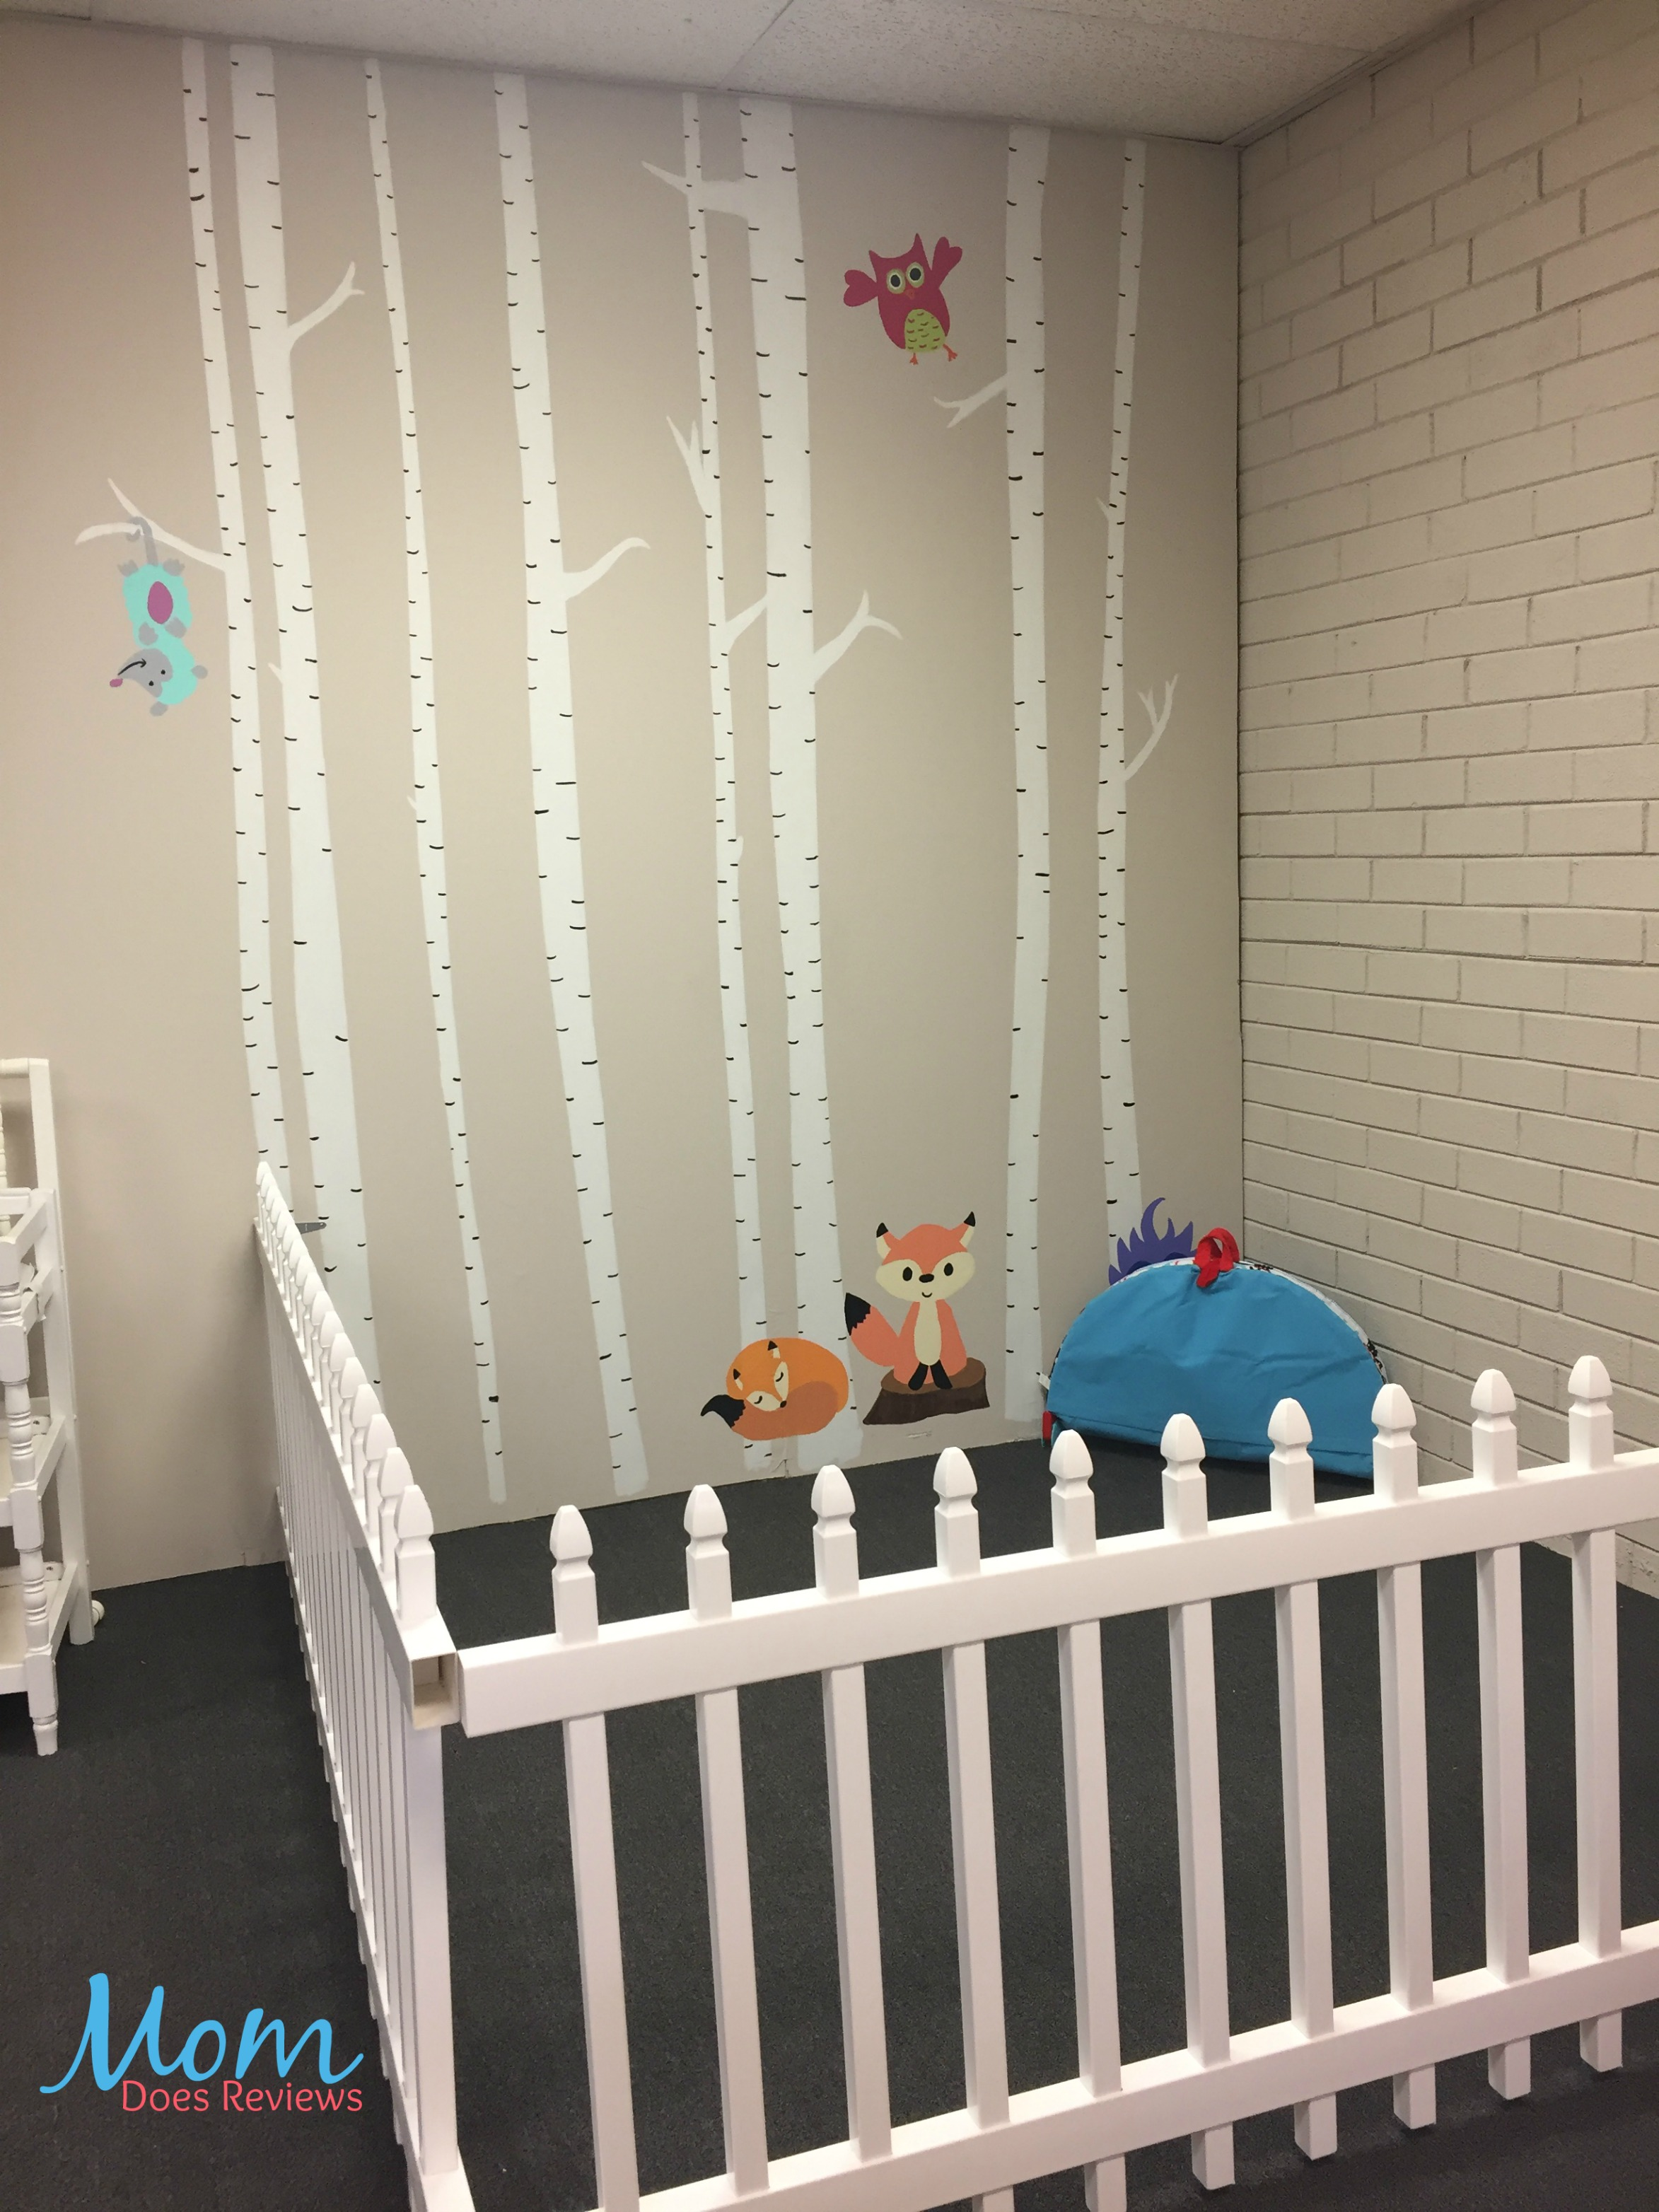 Painted birch trees mural for the nursery wall for Birch tree mural nursery